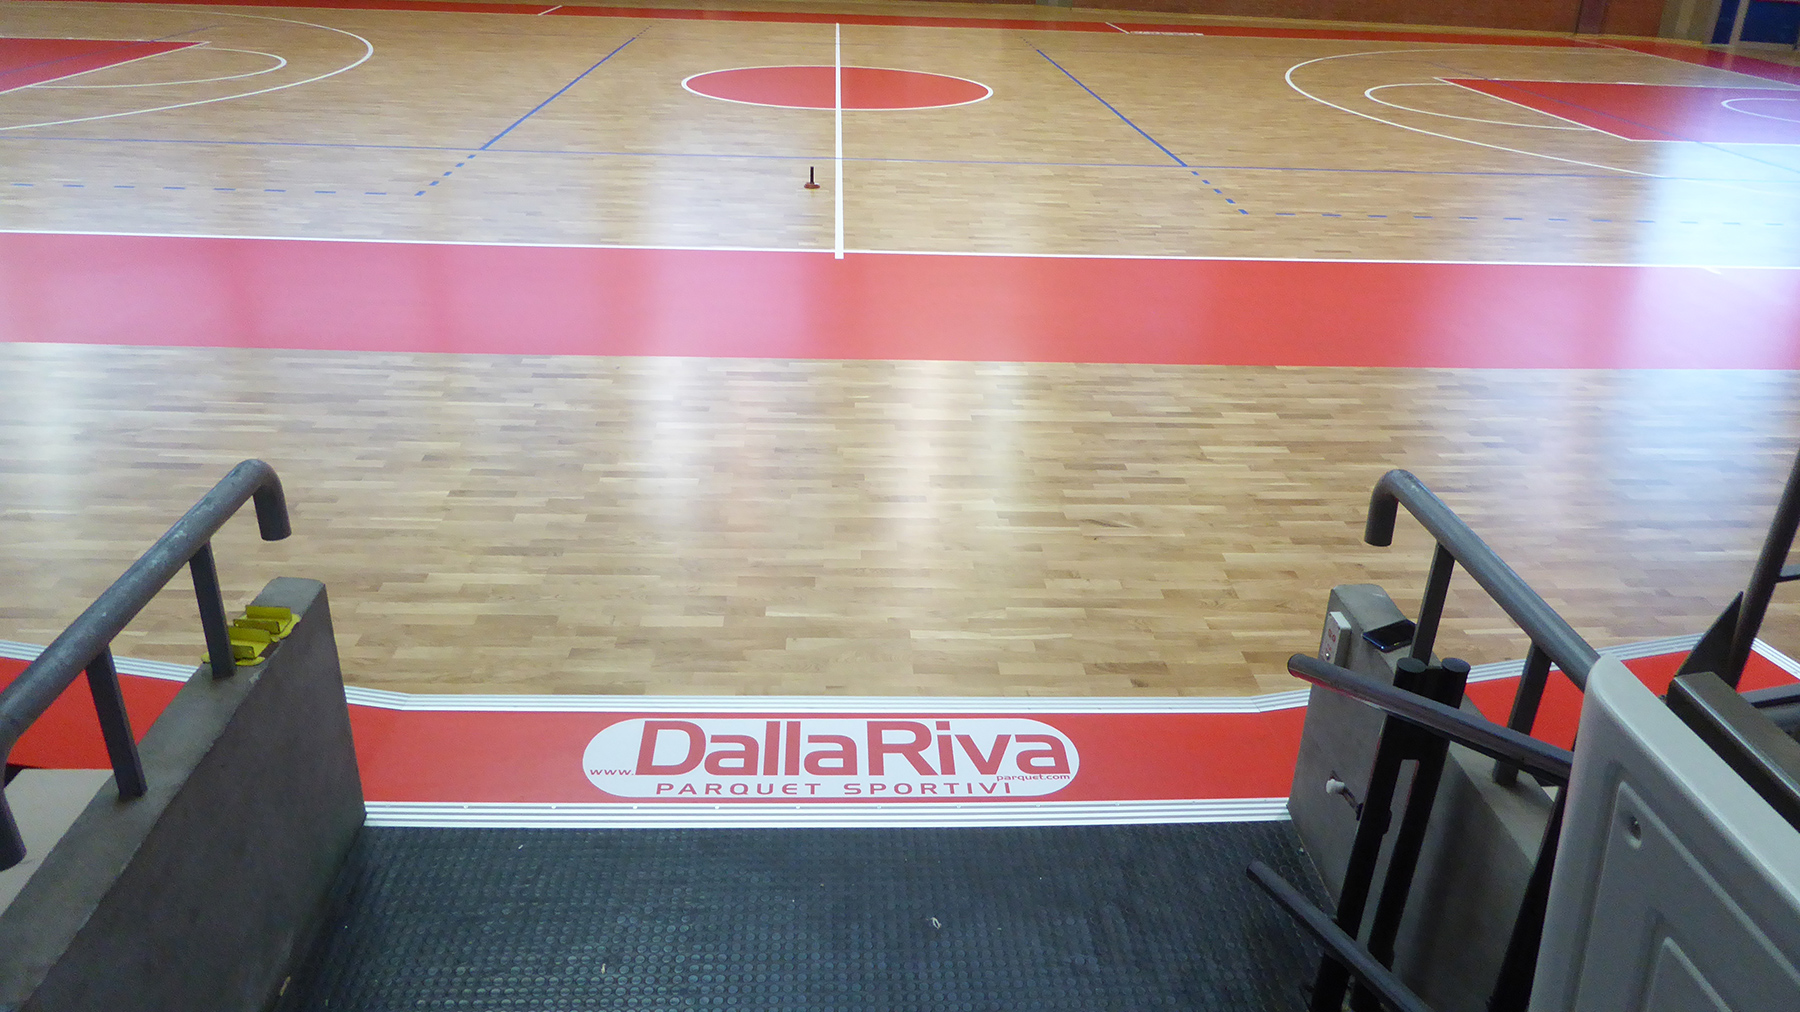 The DR emblem in perfect harmony with the flooring